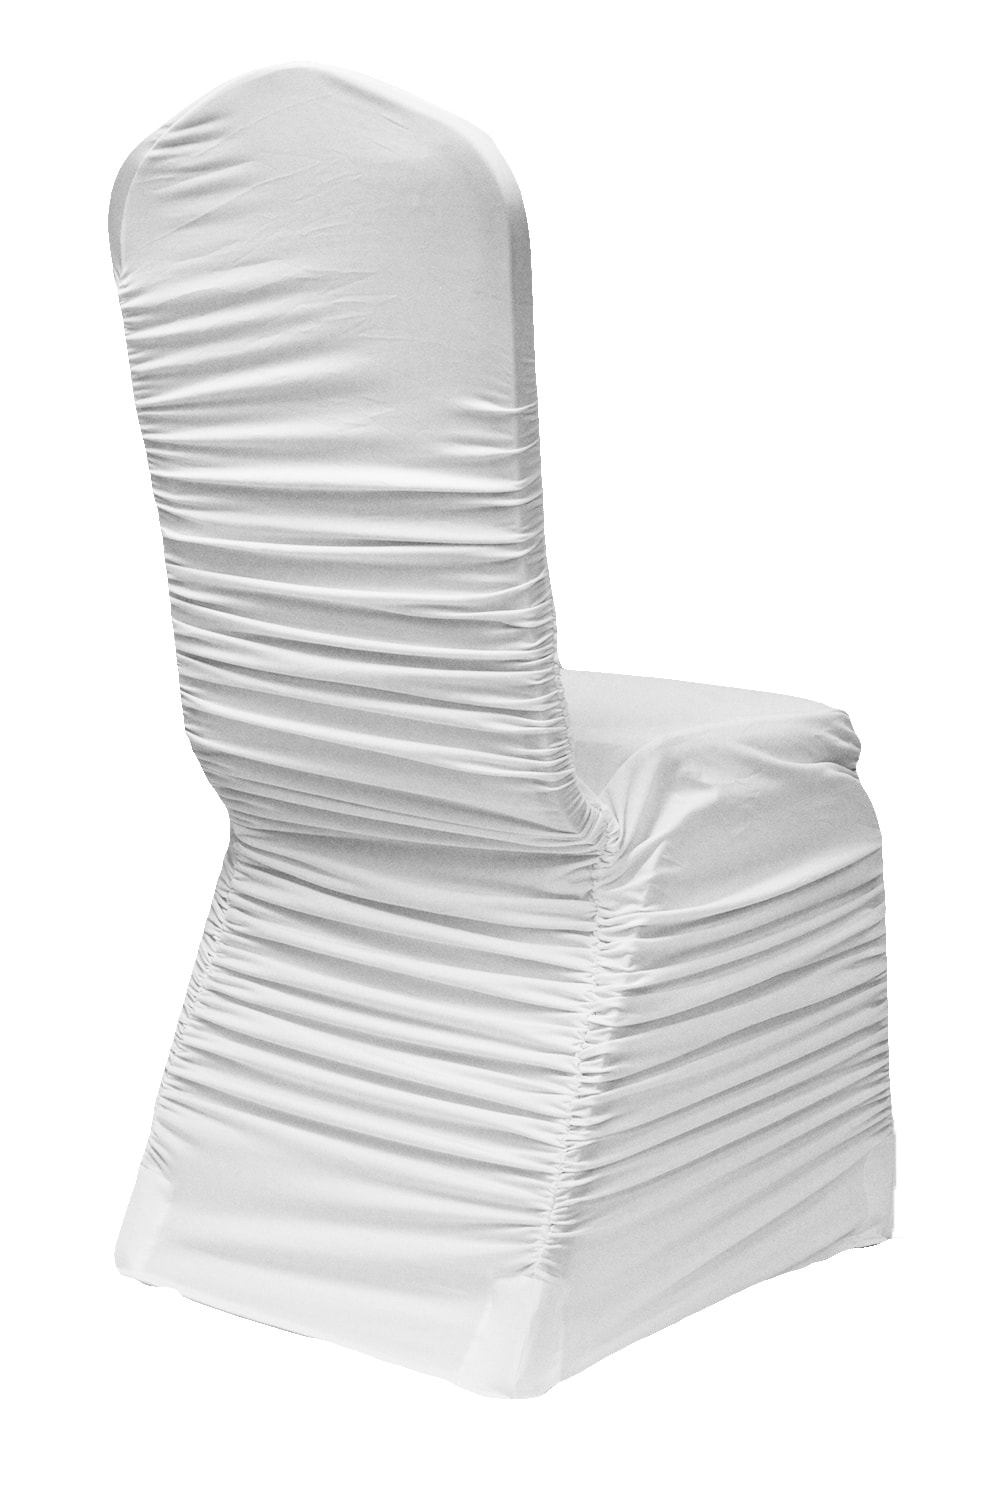 affordable chair covers calgary patio swing canopy replacement sashes noretas decor inc picture